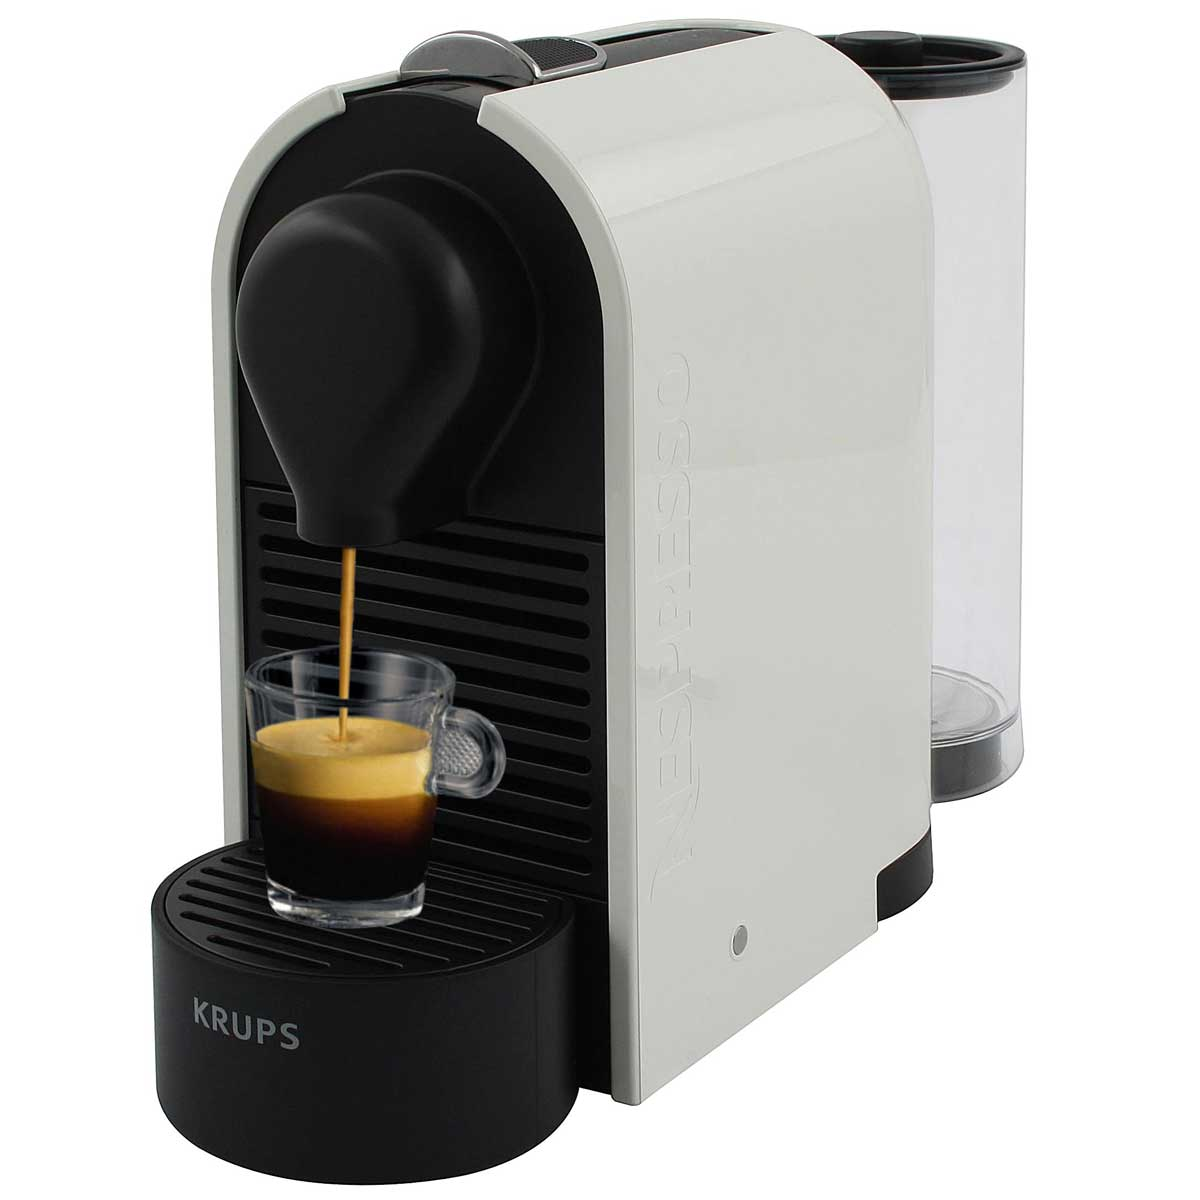 Machine a cafe pas cher machine nespresso pas cher collection avec machine cafe photo zaxportal - Auchan machine a cafe nespresso ...